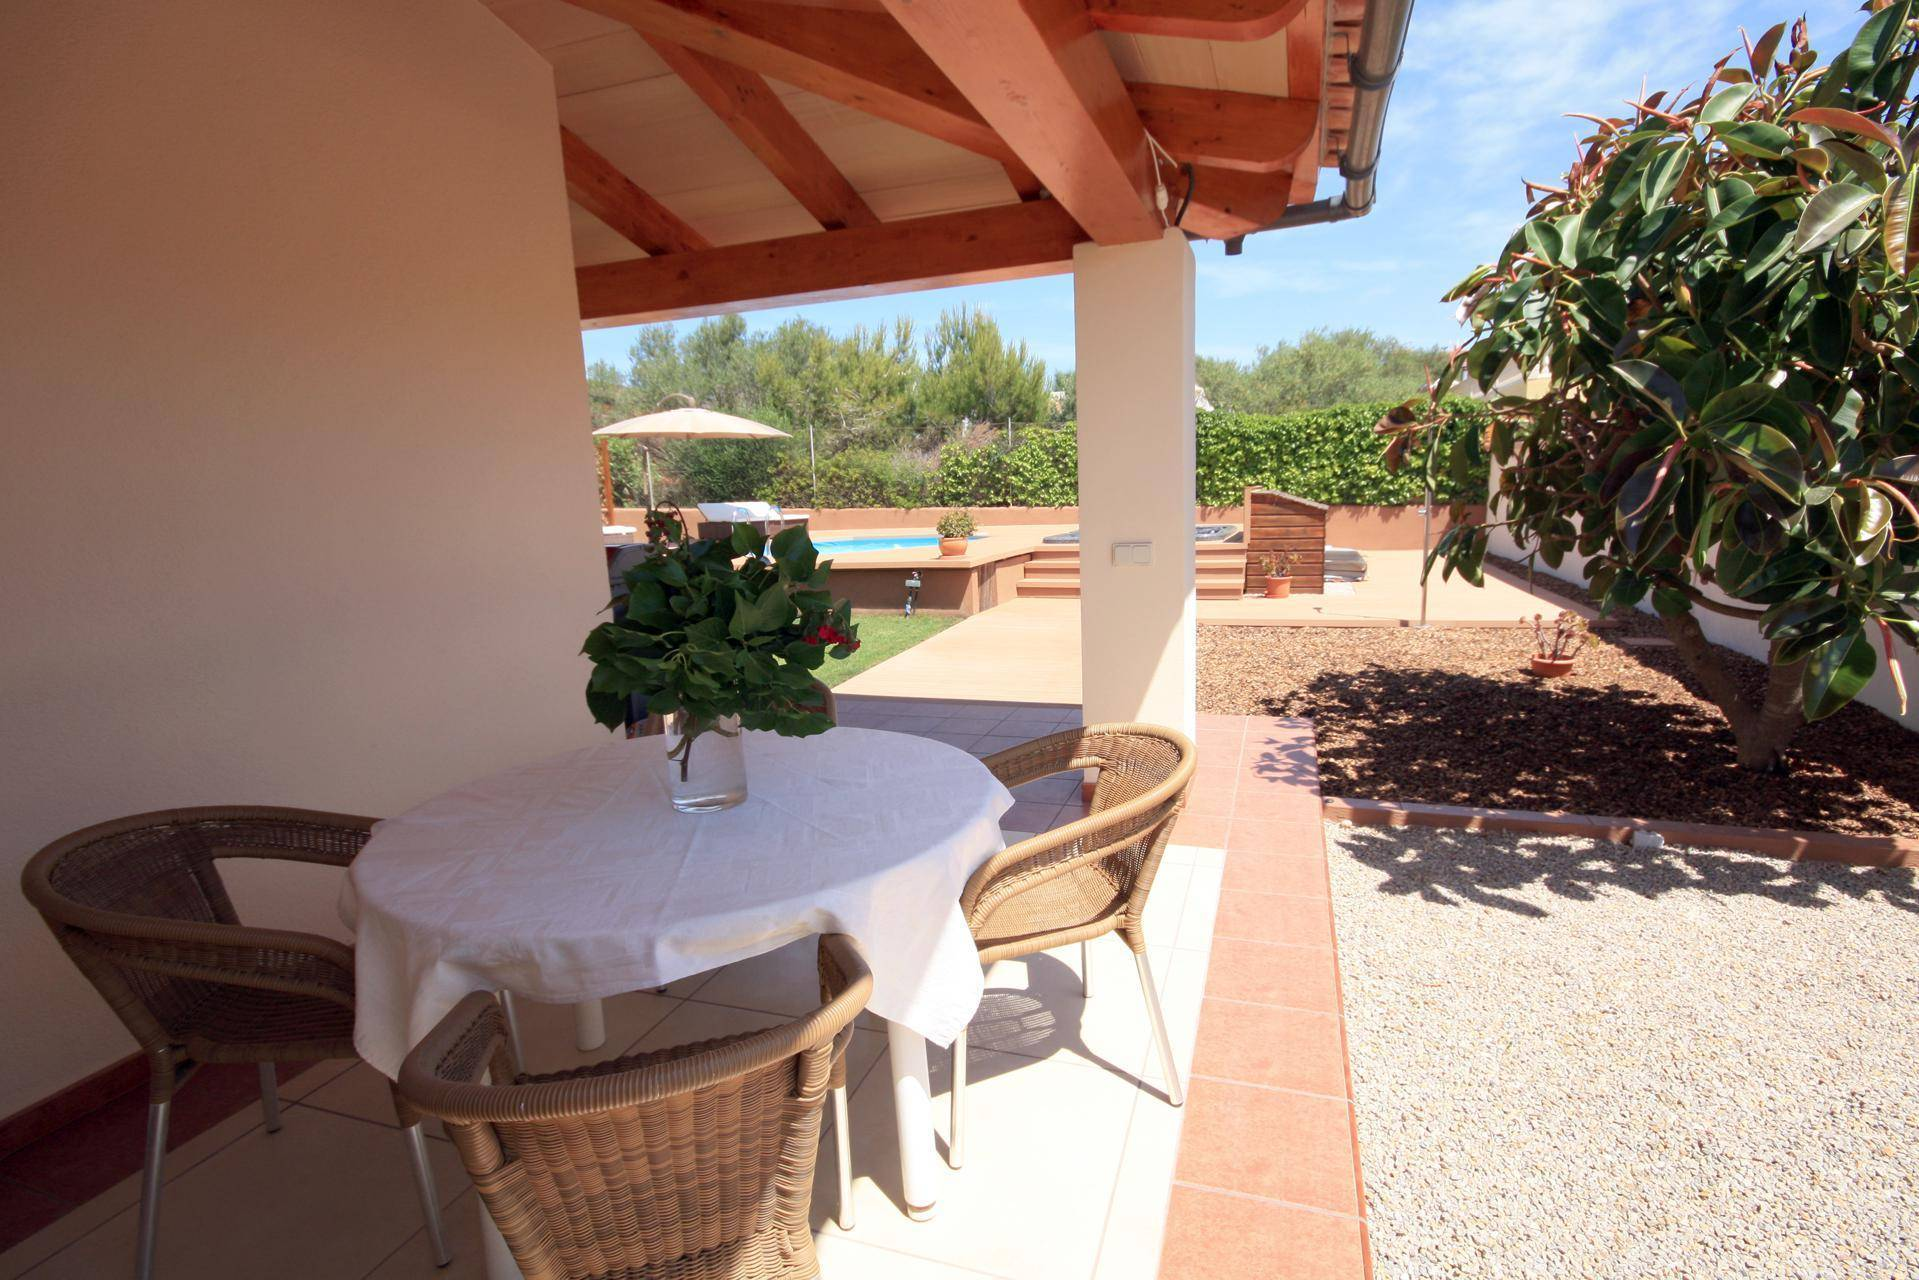 01-12 Small holiday home Mallorca south Bild 14